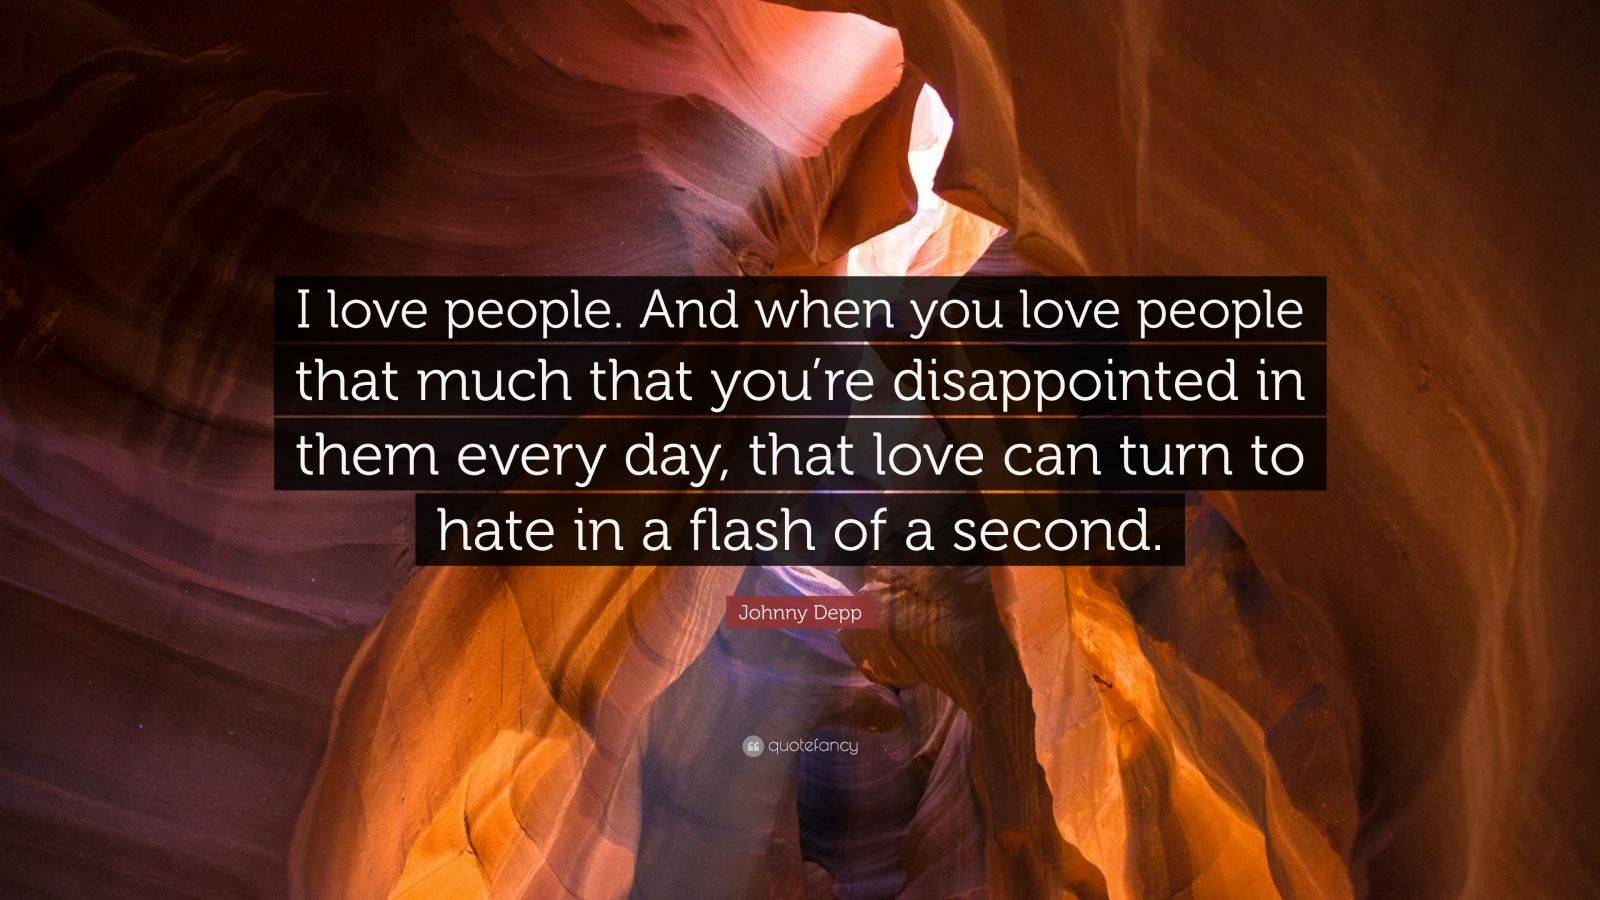 """Johnny Depp Quote: """"I love people. And when you love people that much that you're disappointed in them every day, that love can turn to hate in a flash of a second."""""""